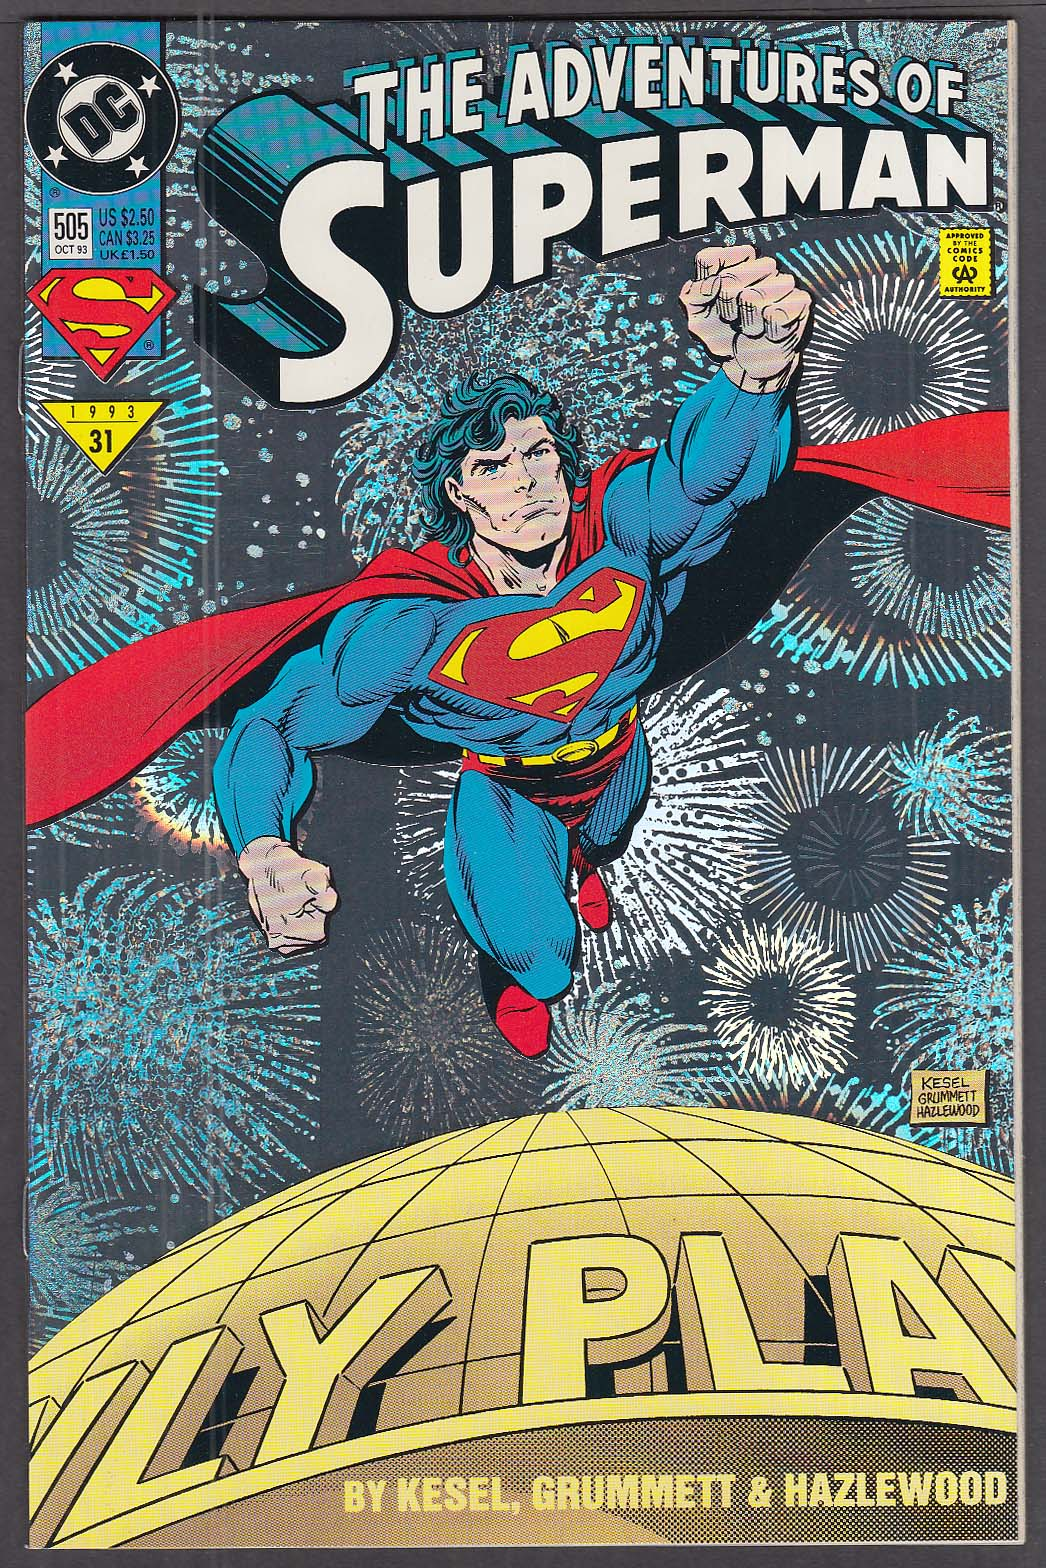 ADVENTURES of SUPERMAN #505 DC comic book 10 1993